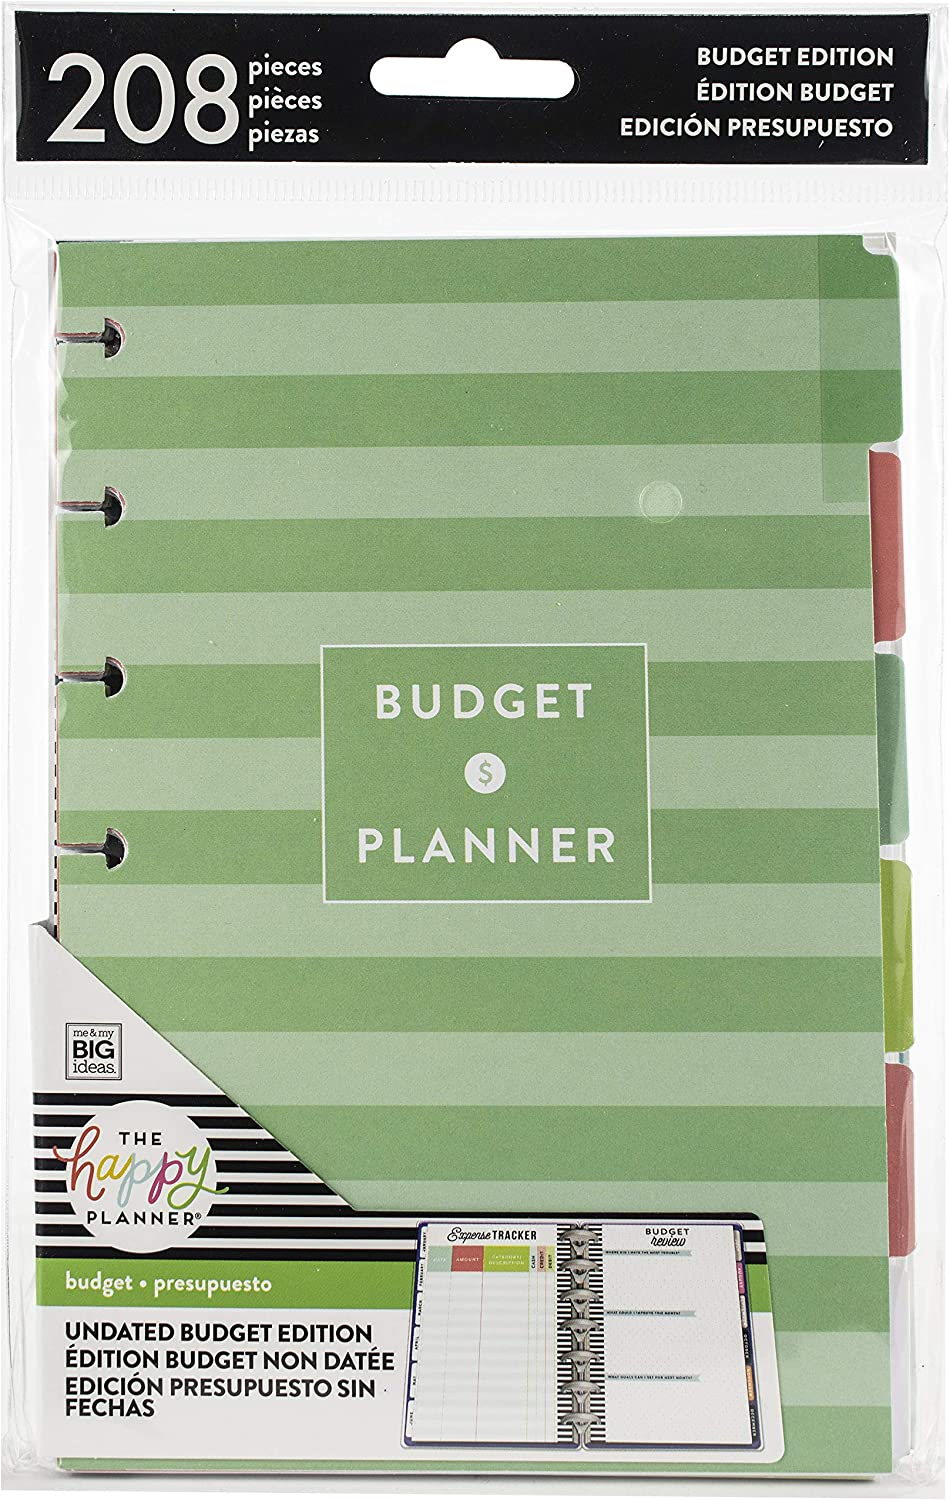 me & my BIG ideas Budget Extension Pack - The Happy Planner Scrapbooking Supplies - 6 Month Expense Tracker - Bill Pay Checklists & Budget Worksheets - Stickers & Dividers for Budgeting - Mini Size